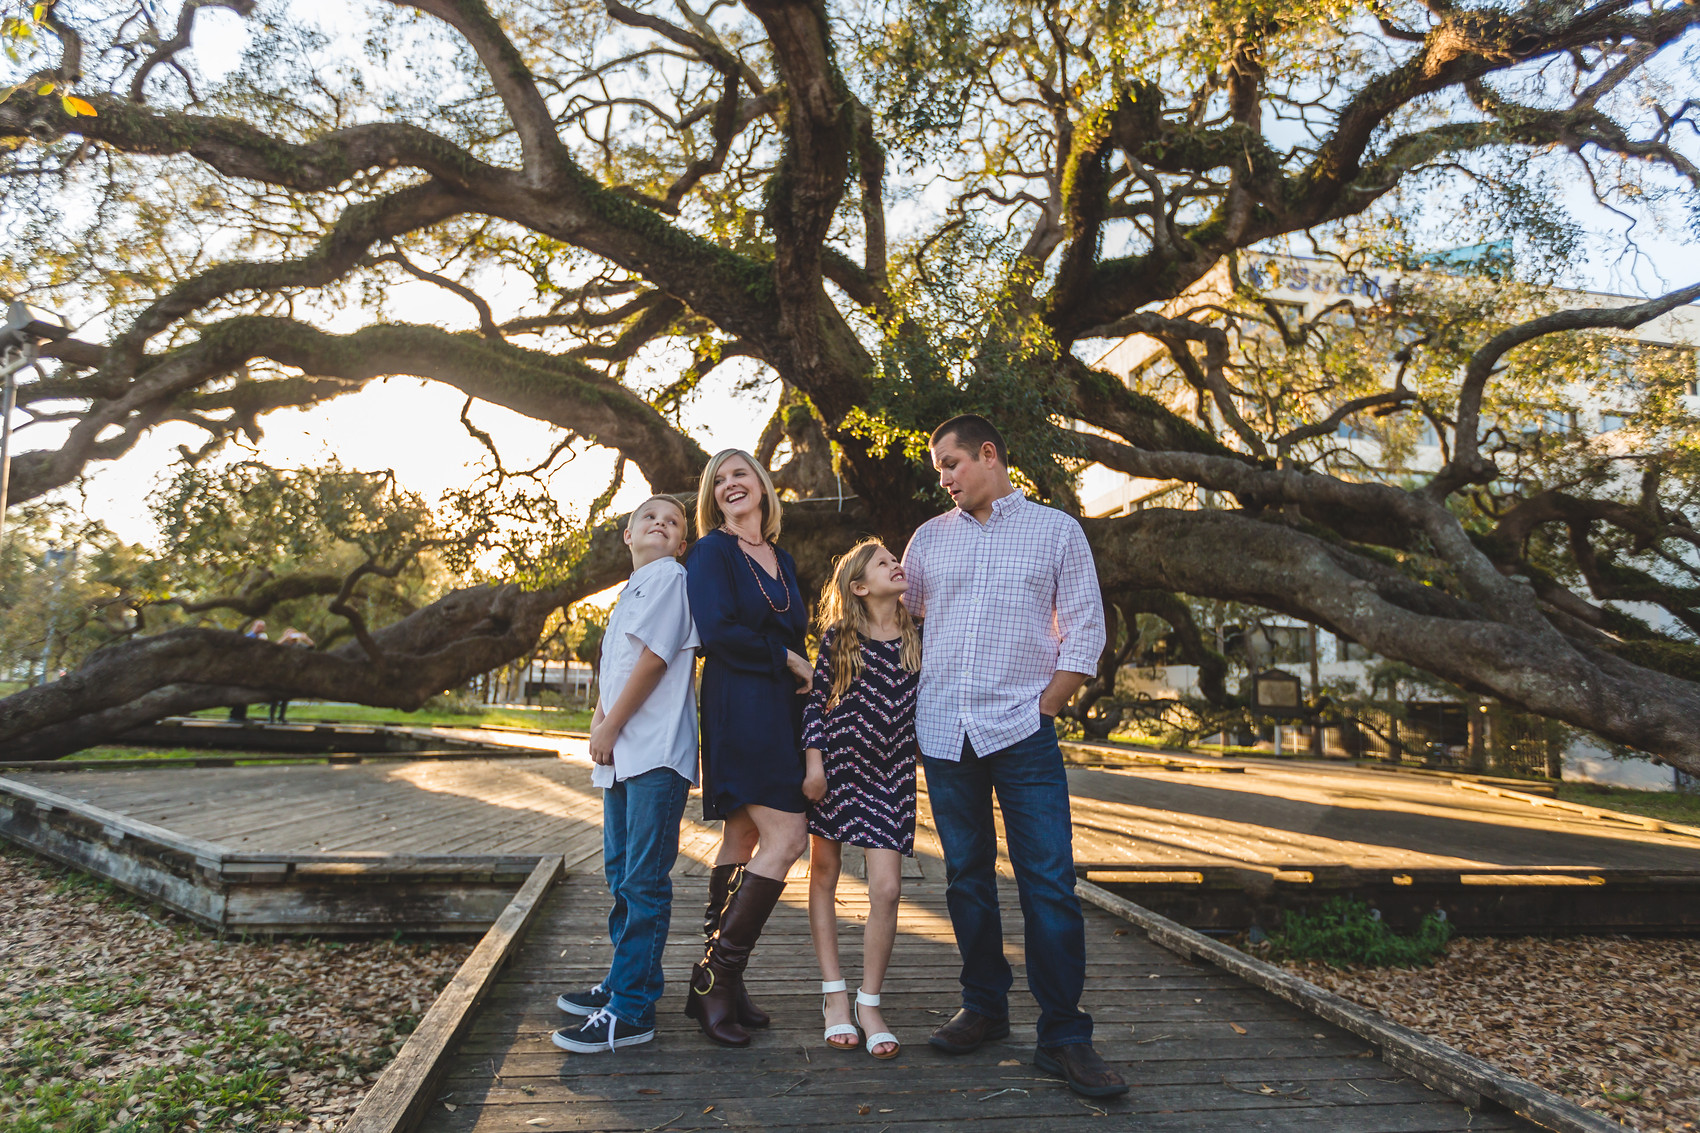 adam-szarmack-treaty-oak-park-jacksonville-family-photographer-5.jpg